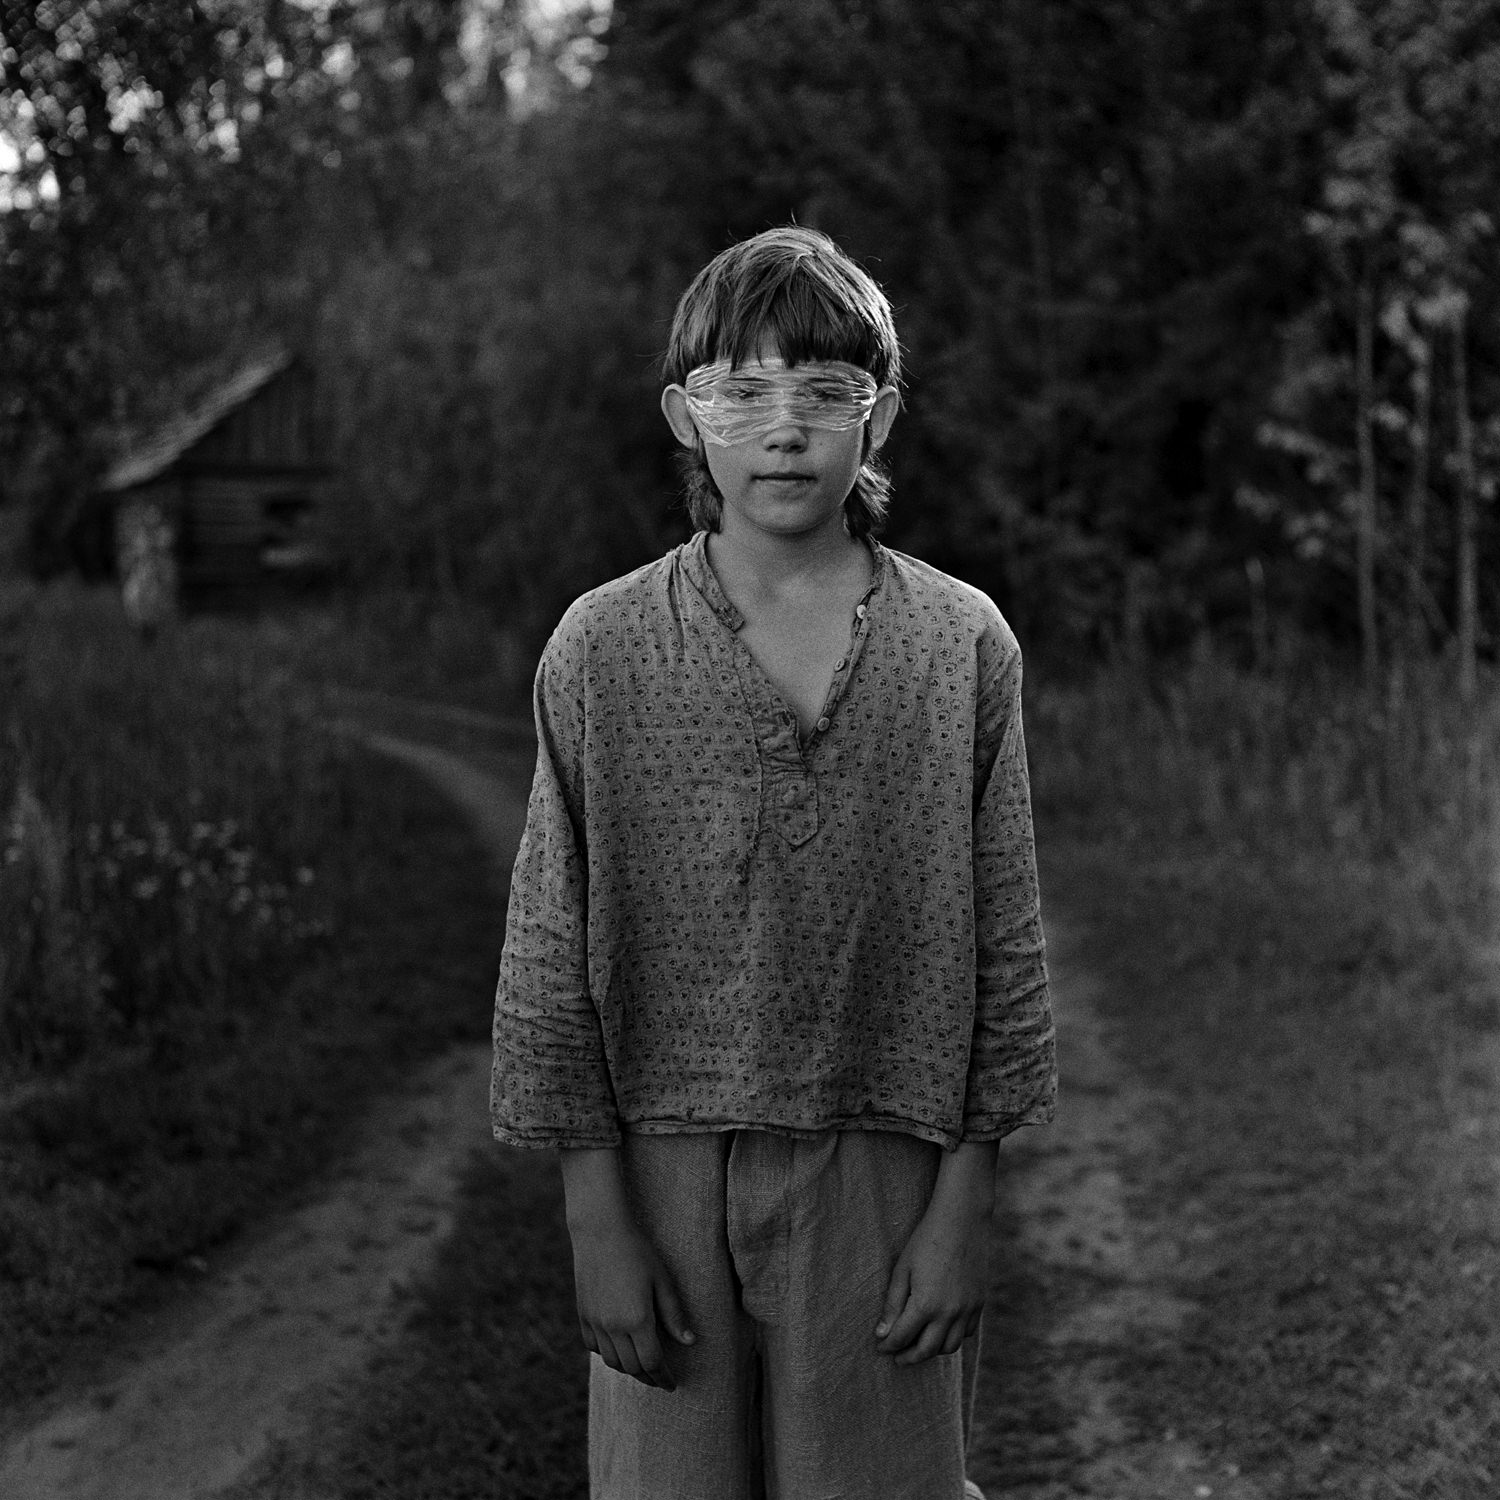 Medium format street portrait of young boy on the country road with old cotton t-shirt and plastic bag on his eyes taken on film